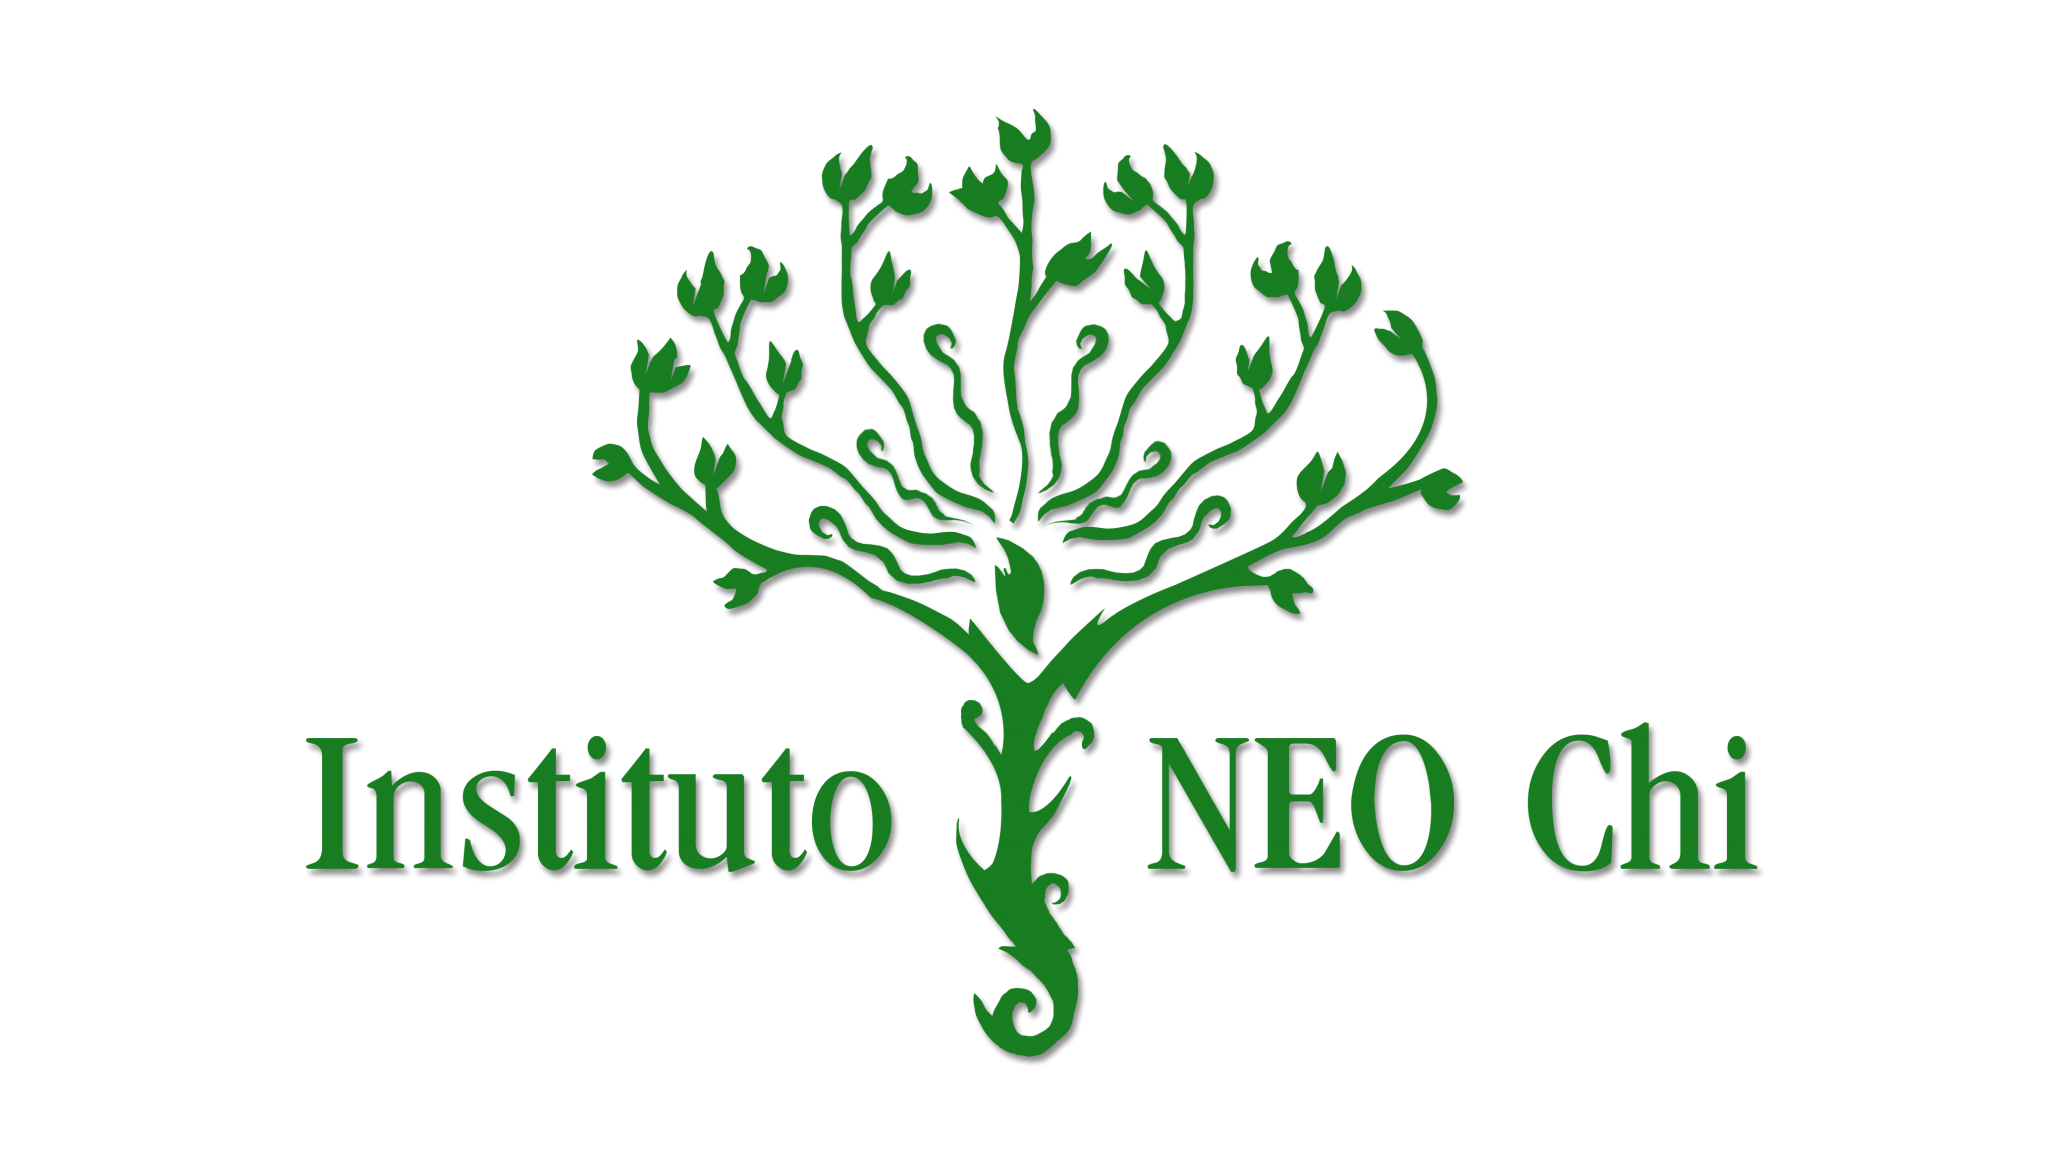 The NEO Chi Institute